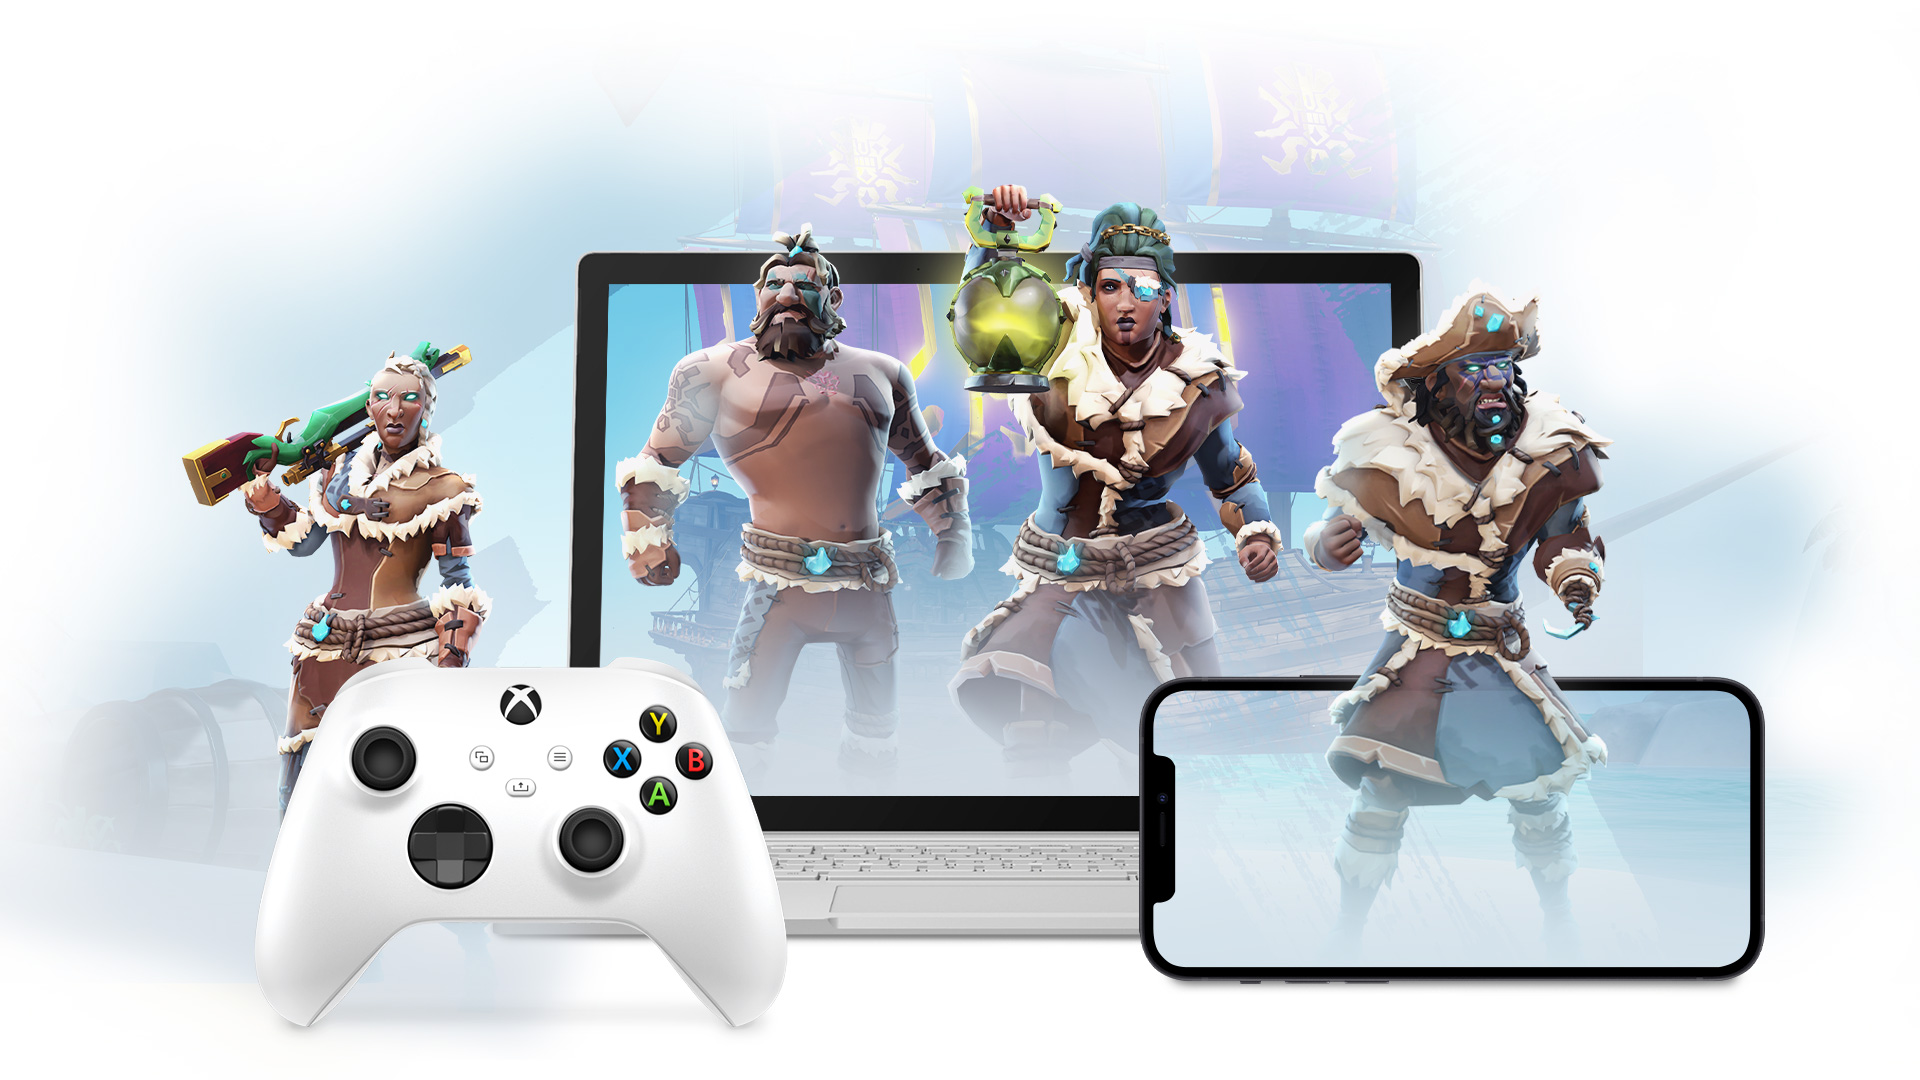 Sea of Thieves pirates emerging from phone and laptop devices.